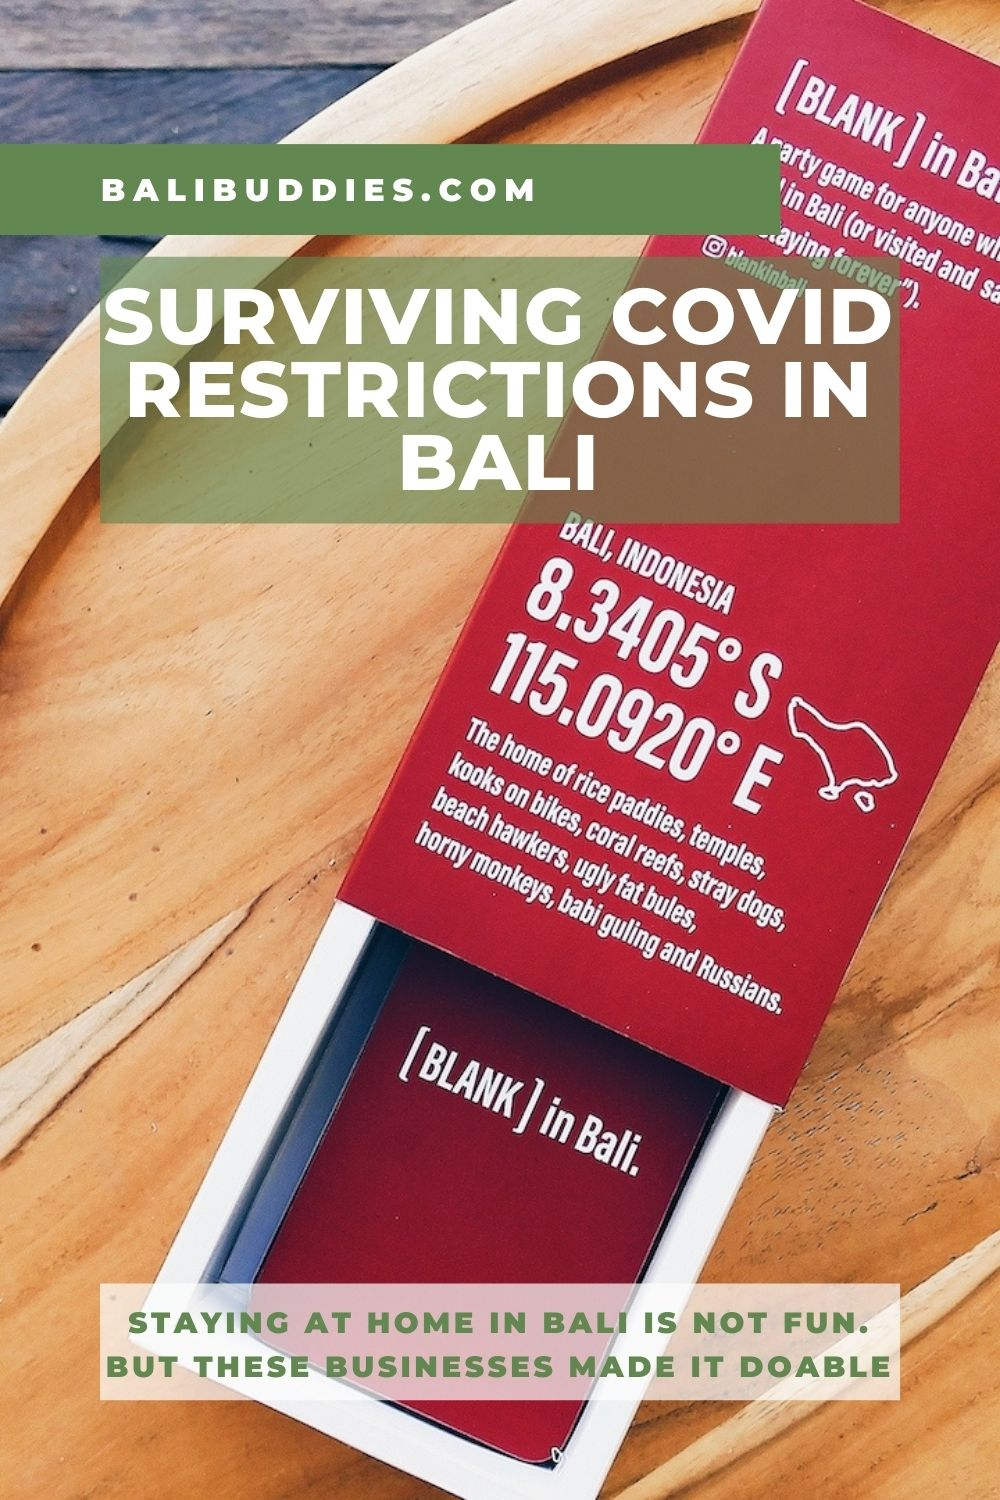 Surviving Covid Restrictions in Bali - Blank in Bali - Blog by Bali Buddies